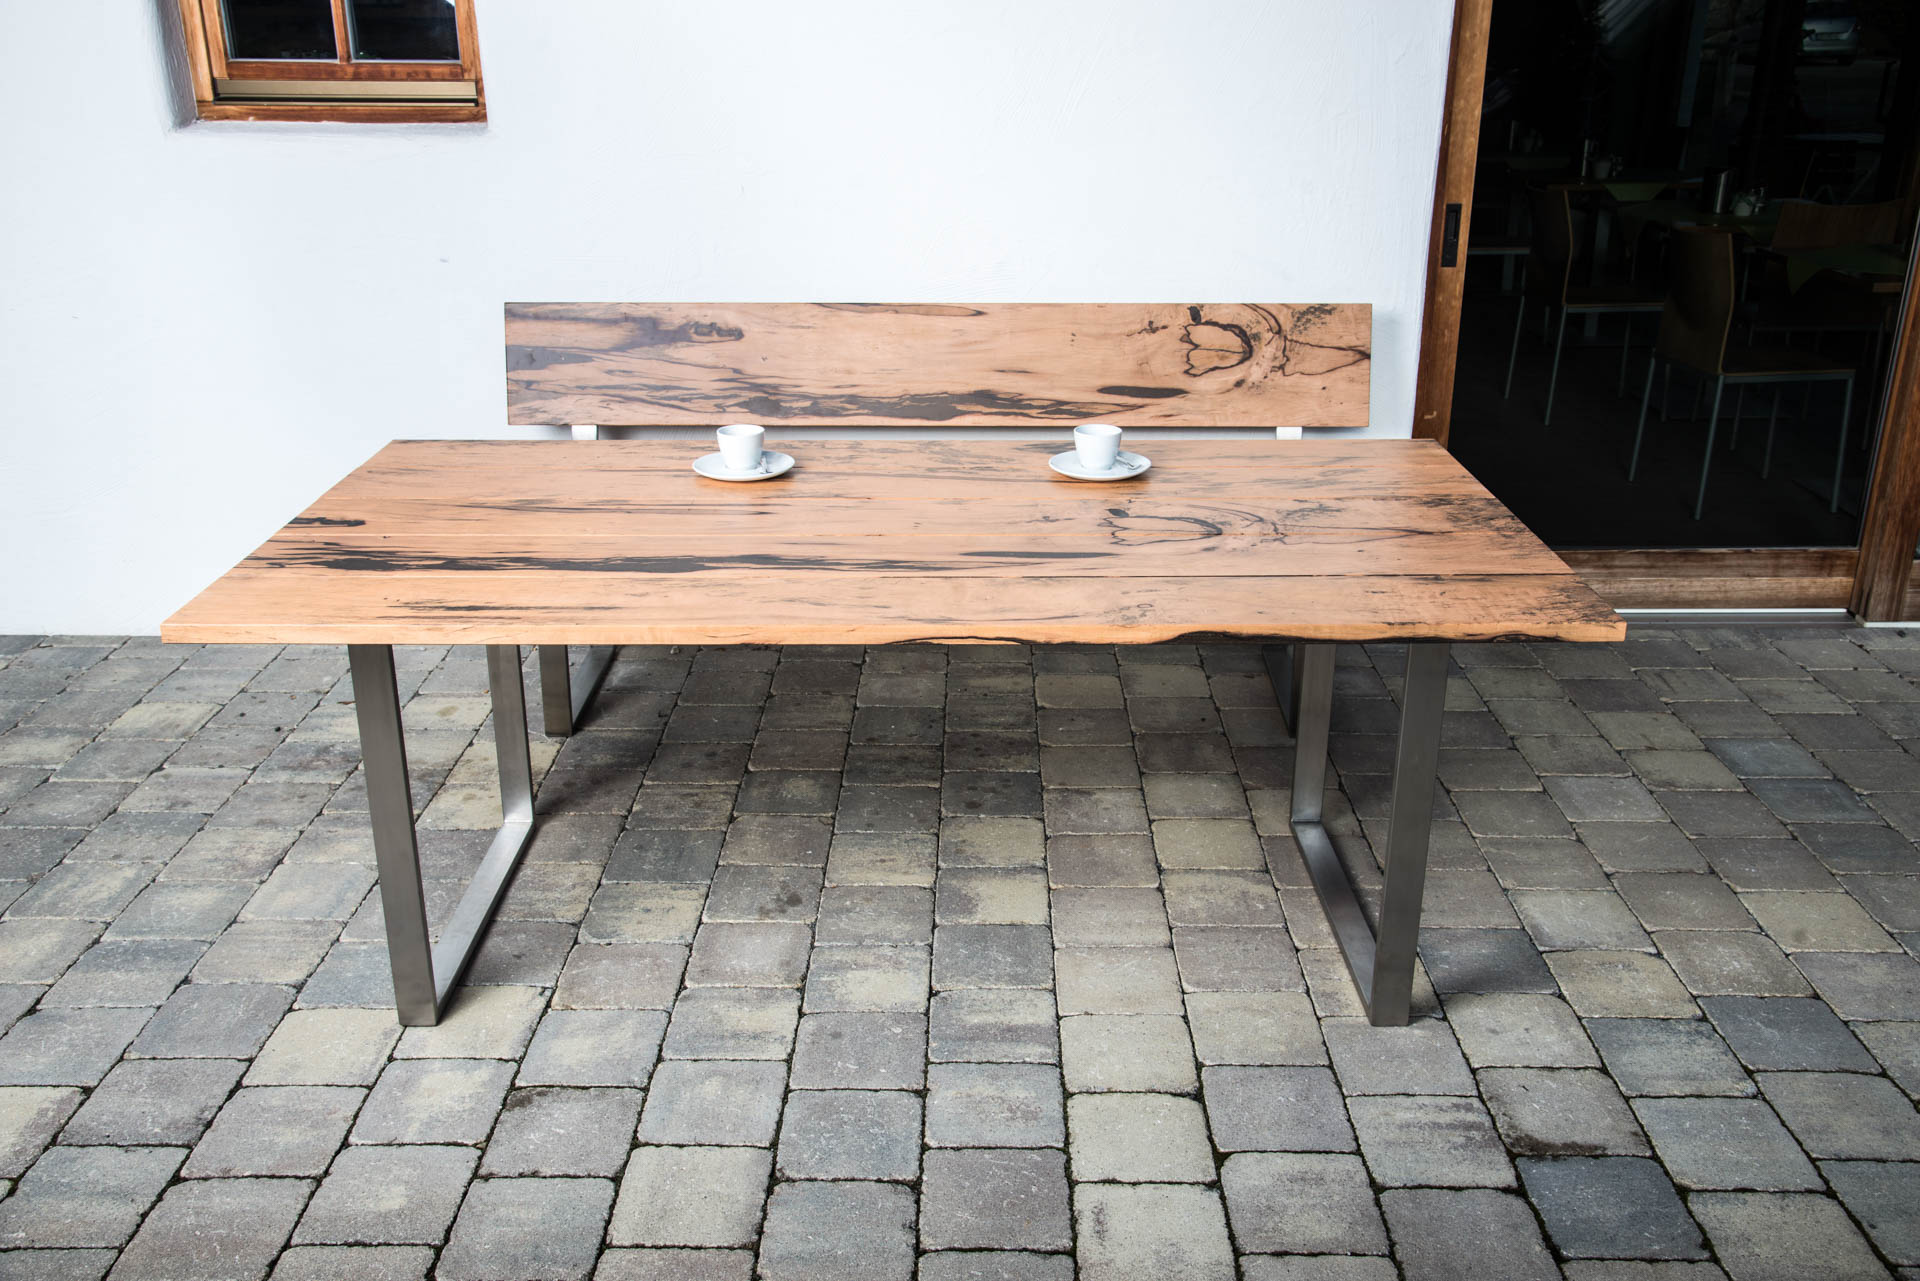 wood table design pictures photo - 4